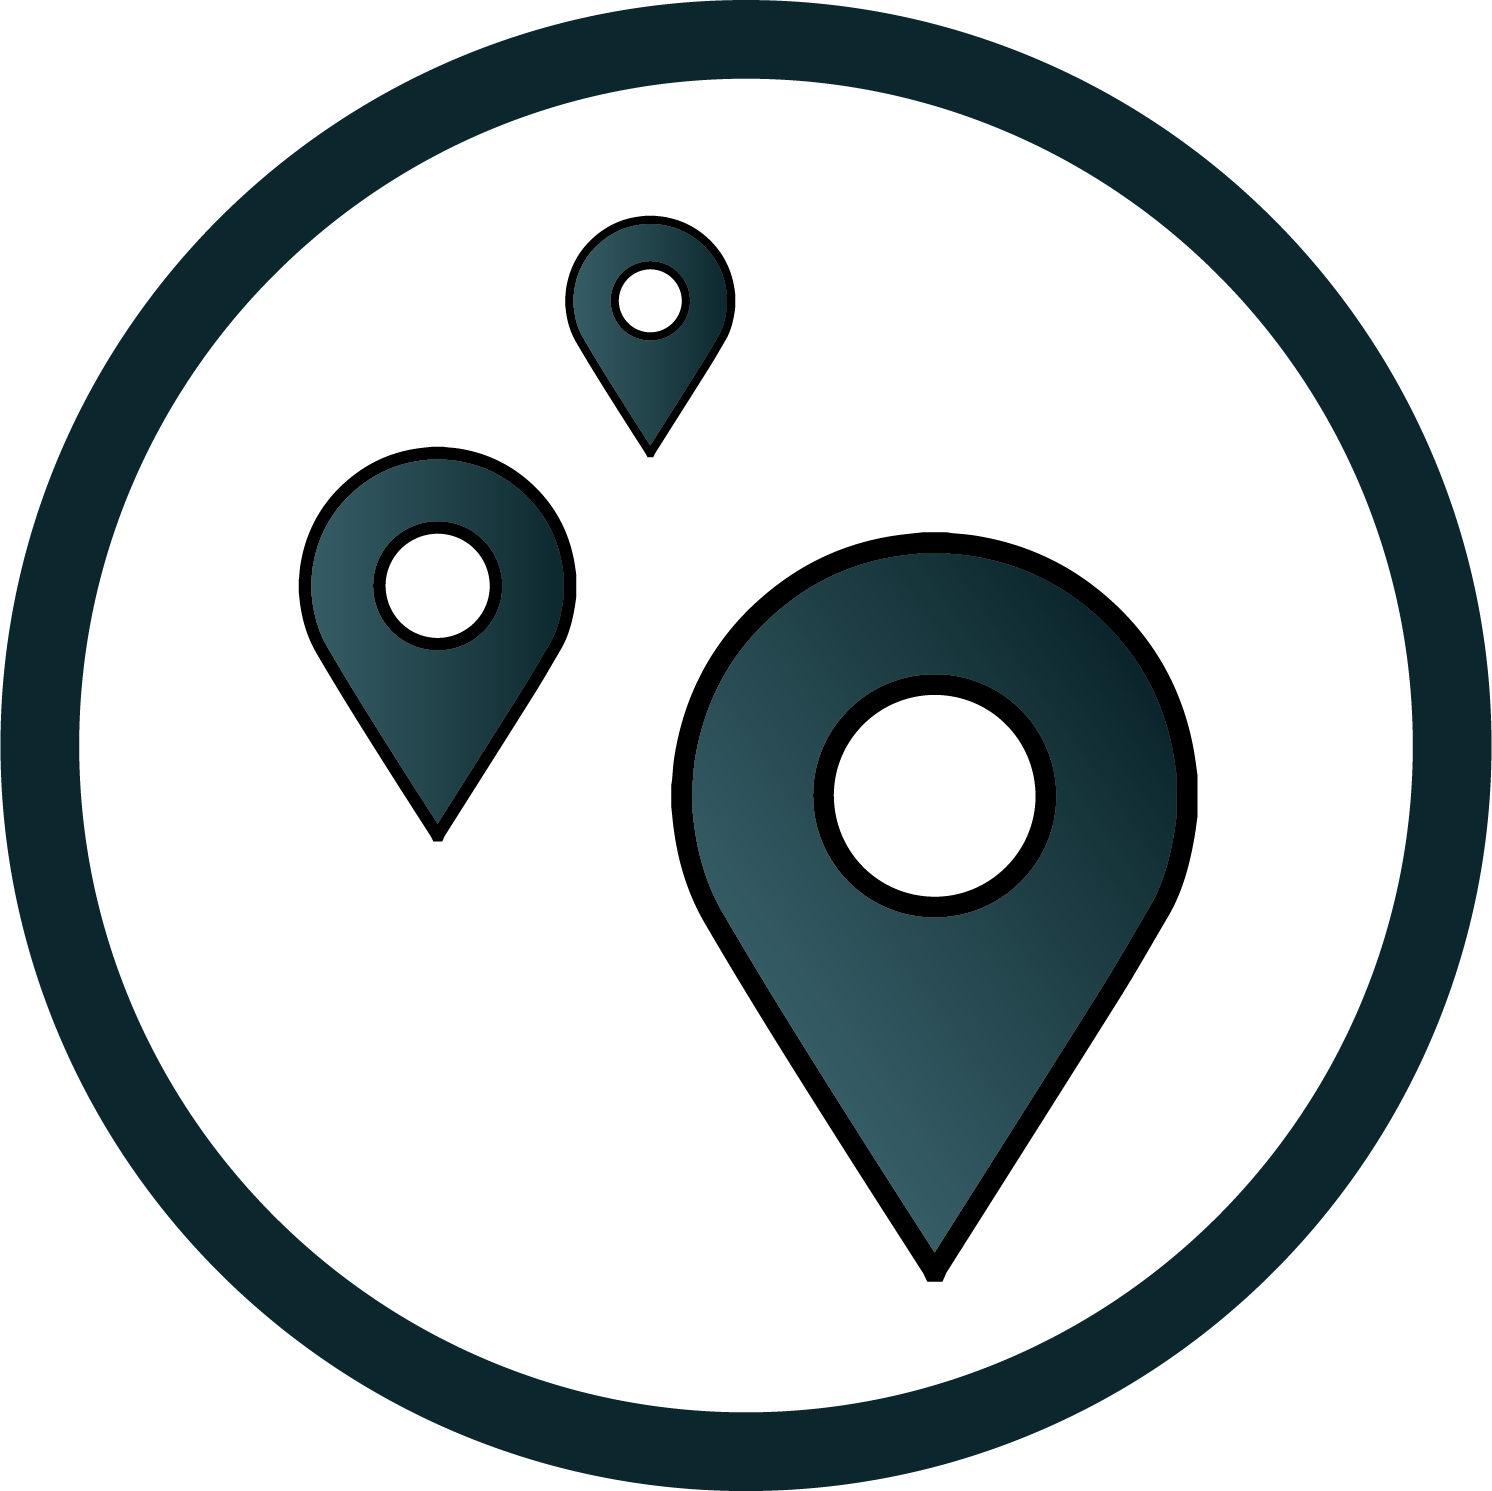 AA location icon